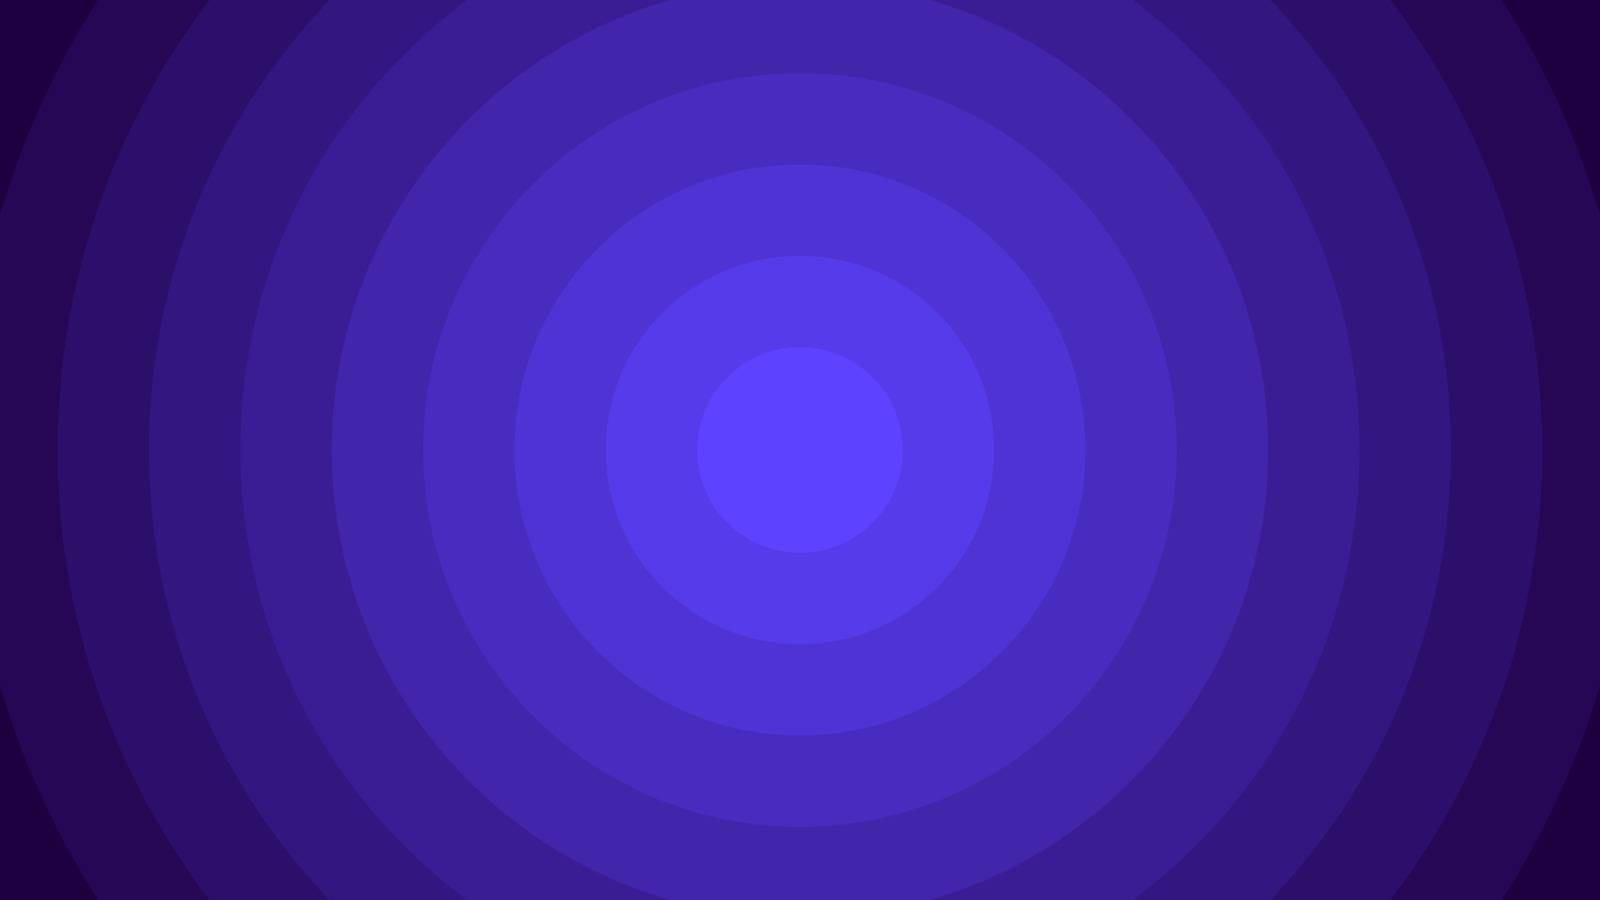 Violet Blue vector pattern with circles. Geometric abstract illustration for website, poster, banner ads.